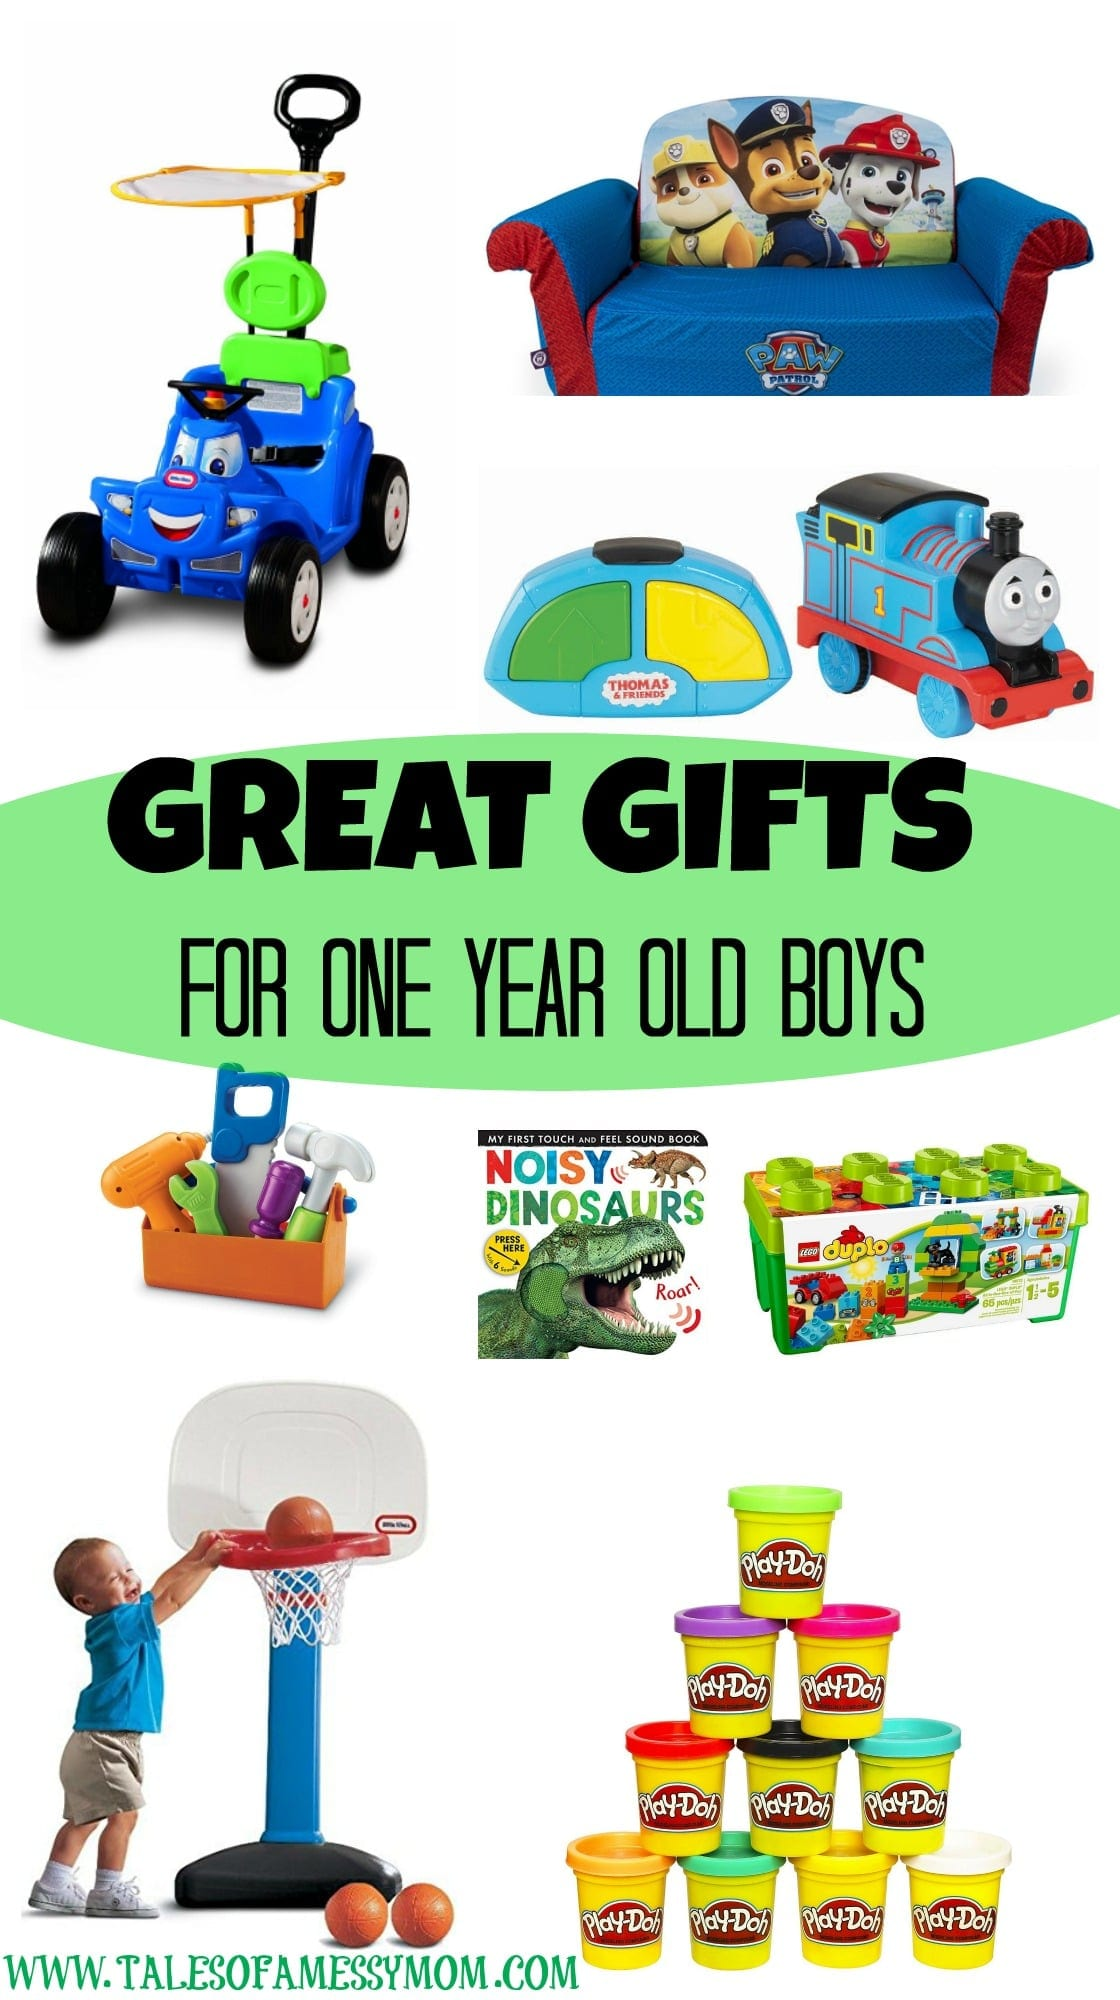 Gift Ideas for e Year Old Boys Tales of a Messy Mom